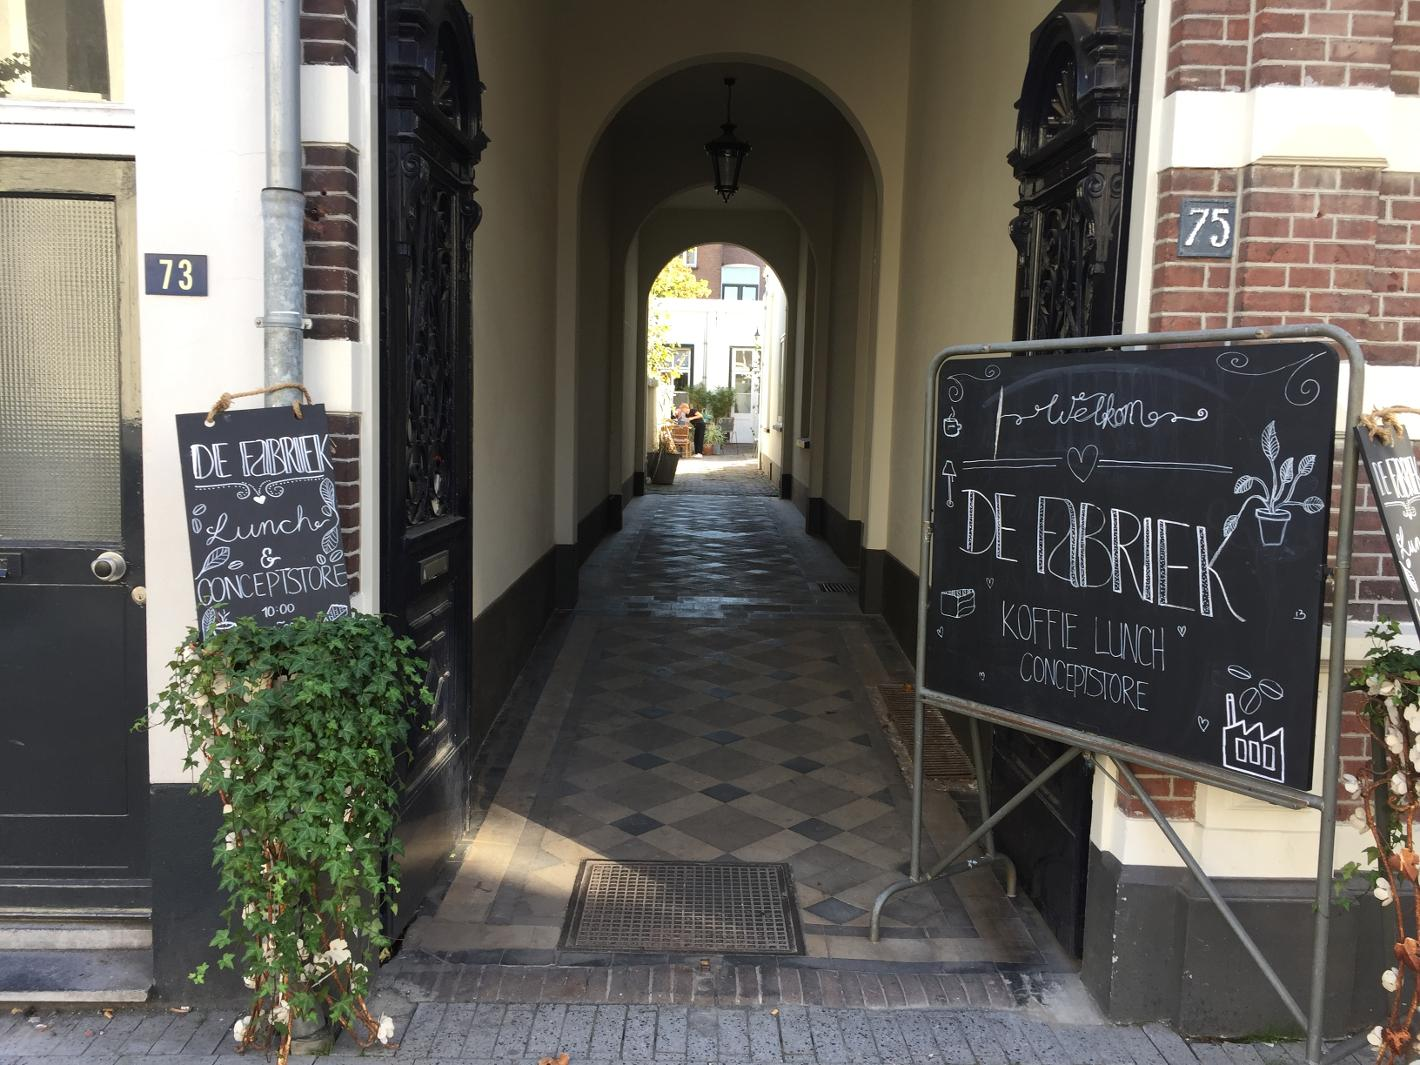 Photo De Fabriek in Nijmegen, Eat & drink, Lifestyle, Coffee, Lunch - #1